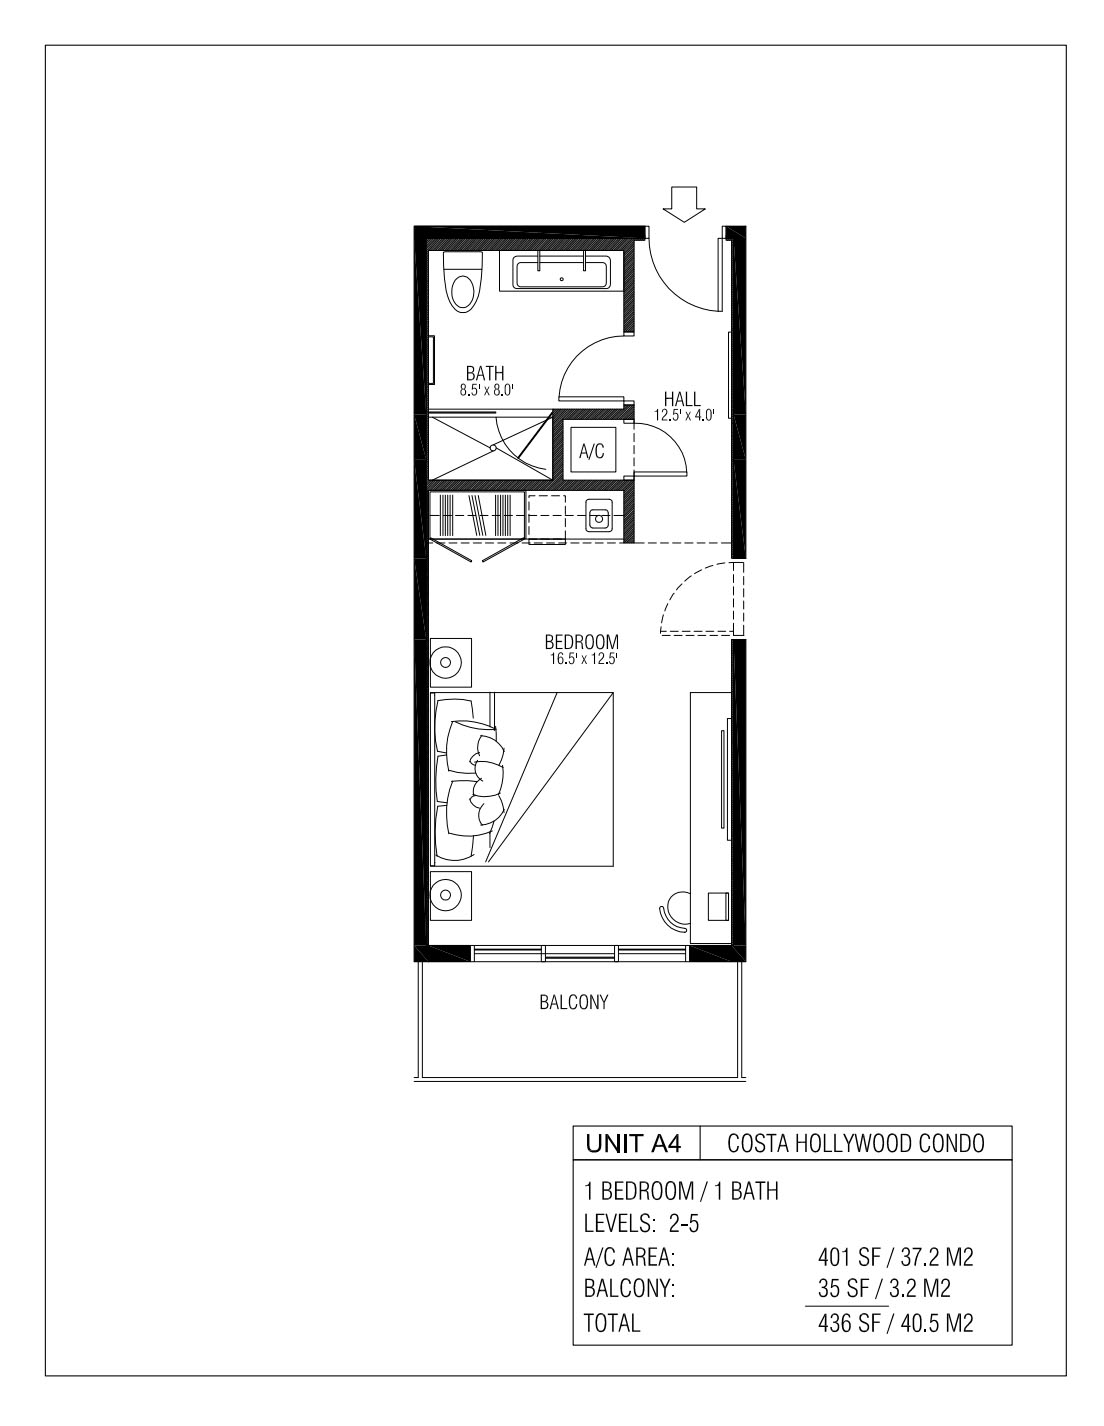 Melia Costa Hollywood - Floorplan 4